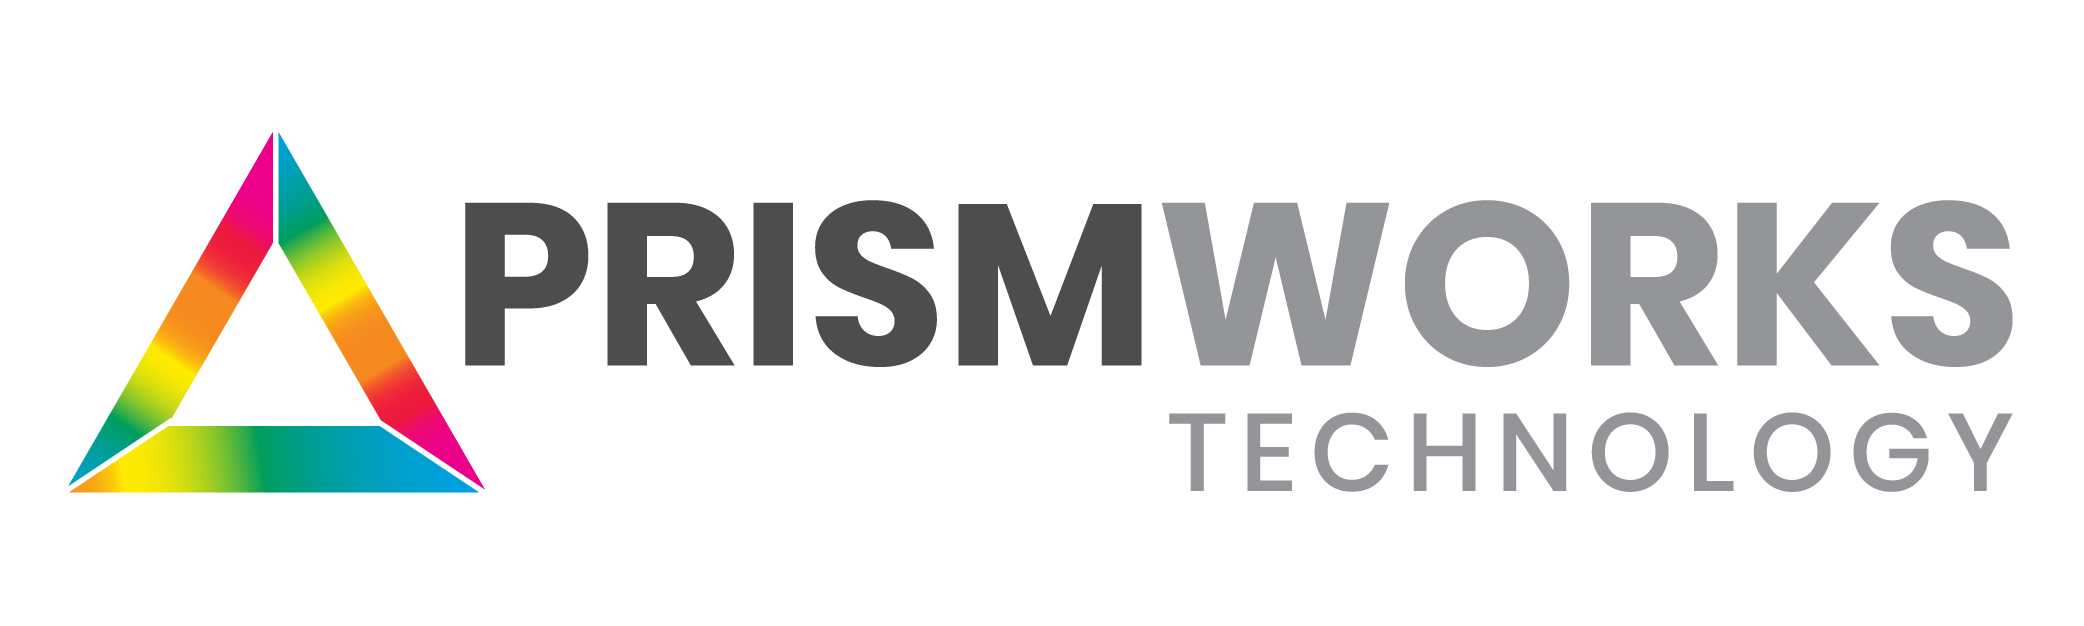 Prismworks Technology